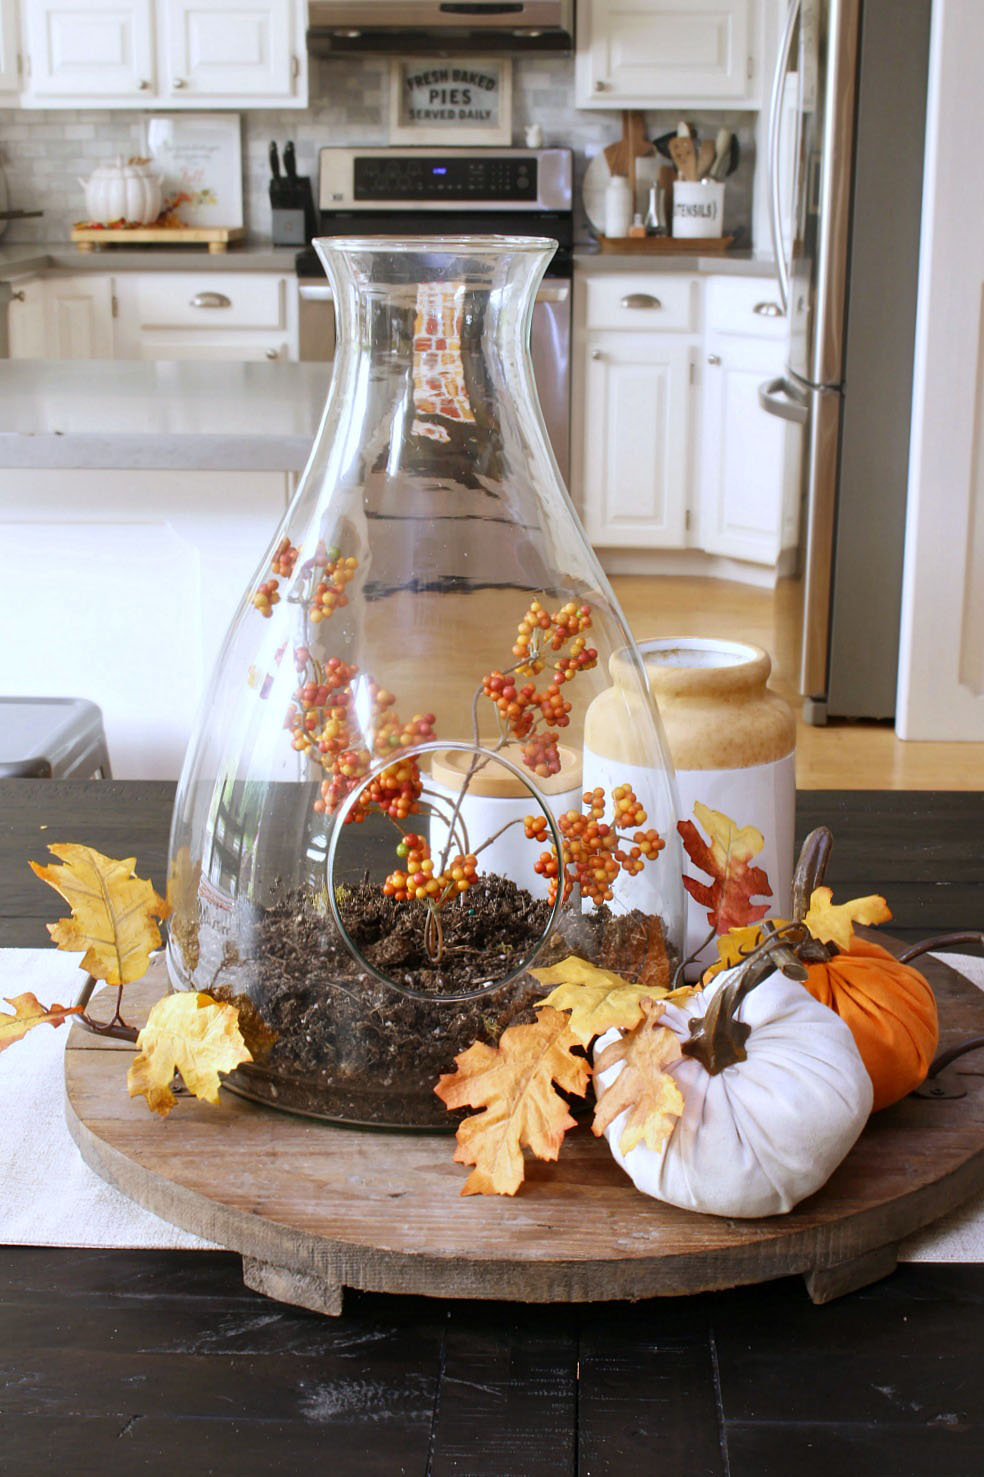 Kitchen fall decor ideas. Join in this fall home tour for tons of fall decor inspiration! Simple fall centerpiece.